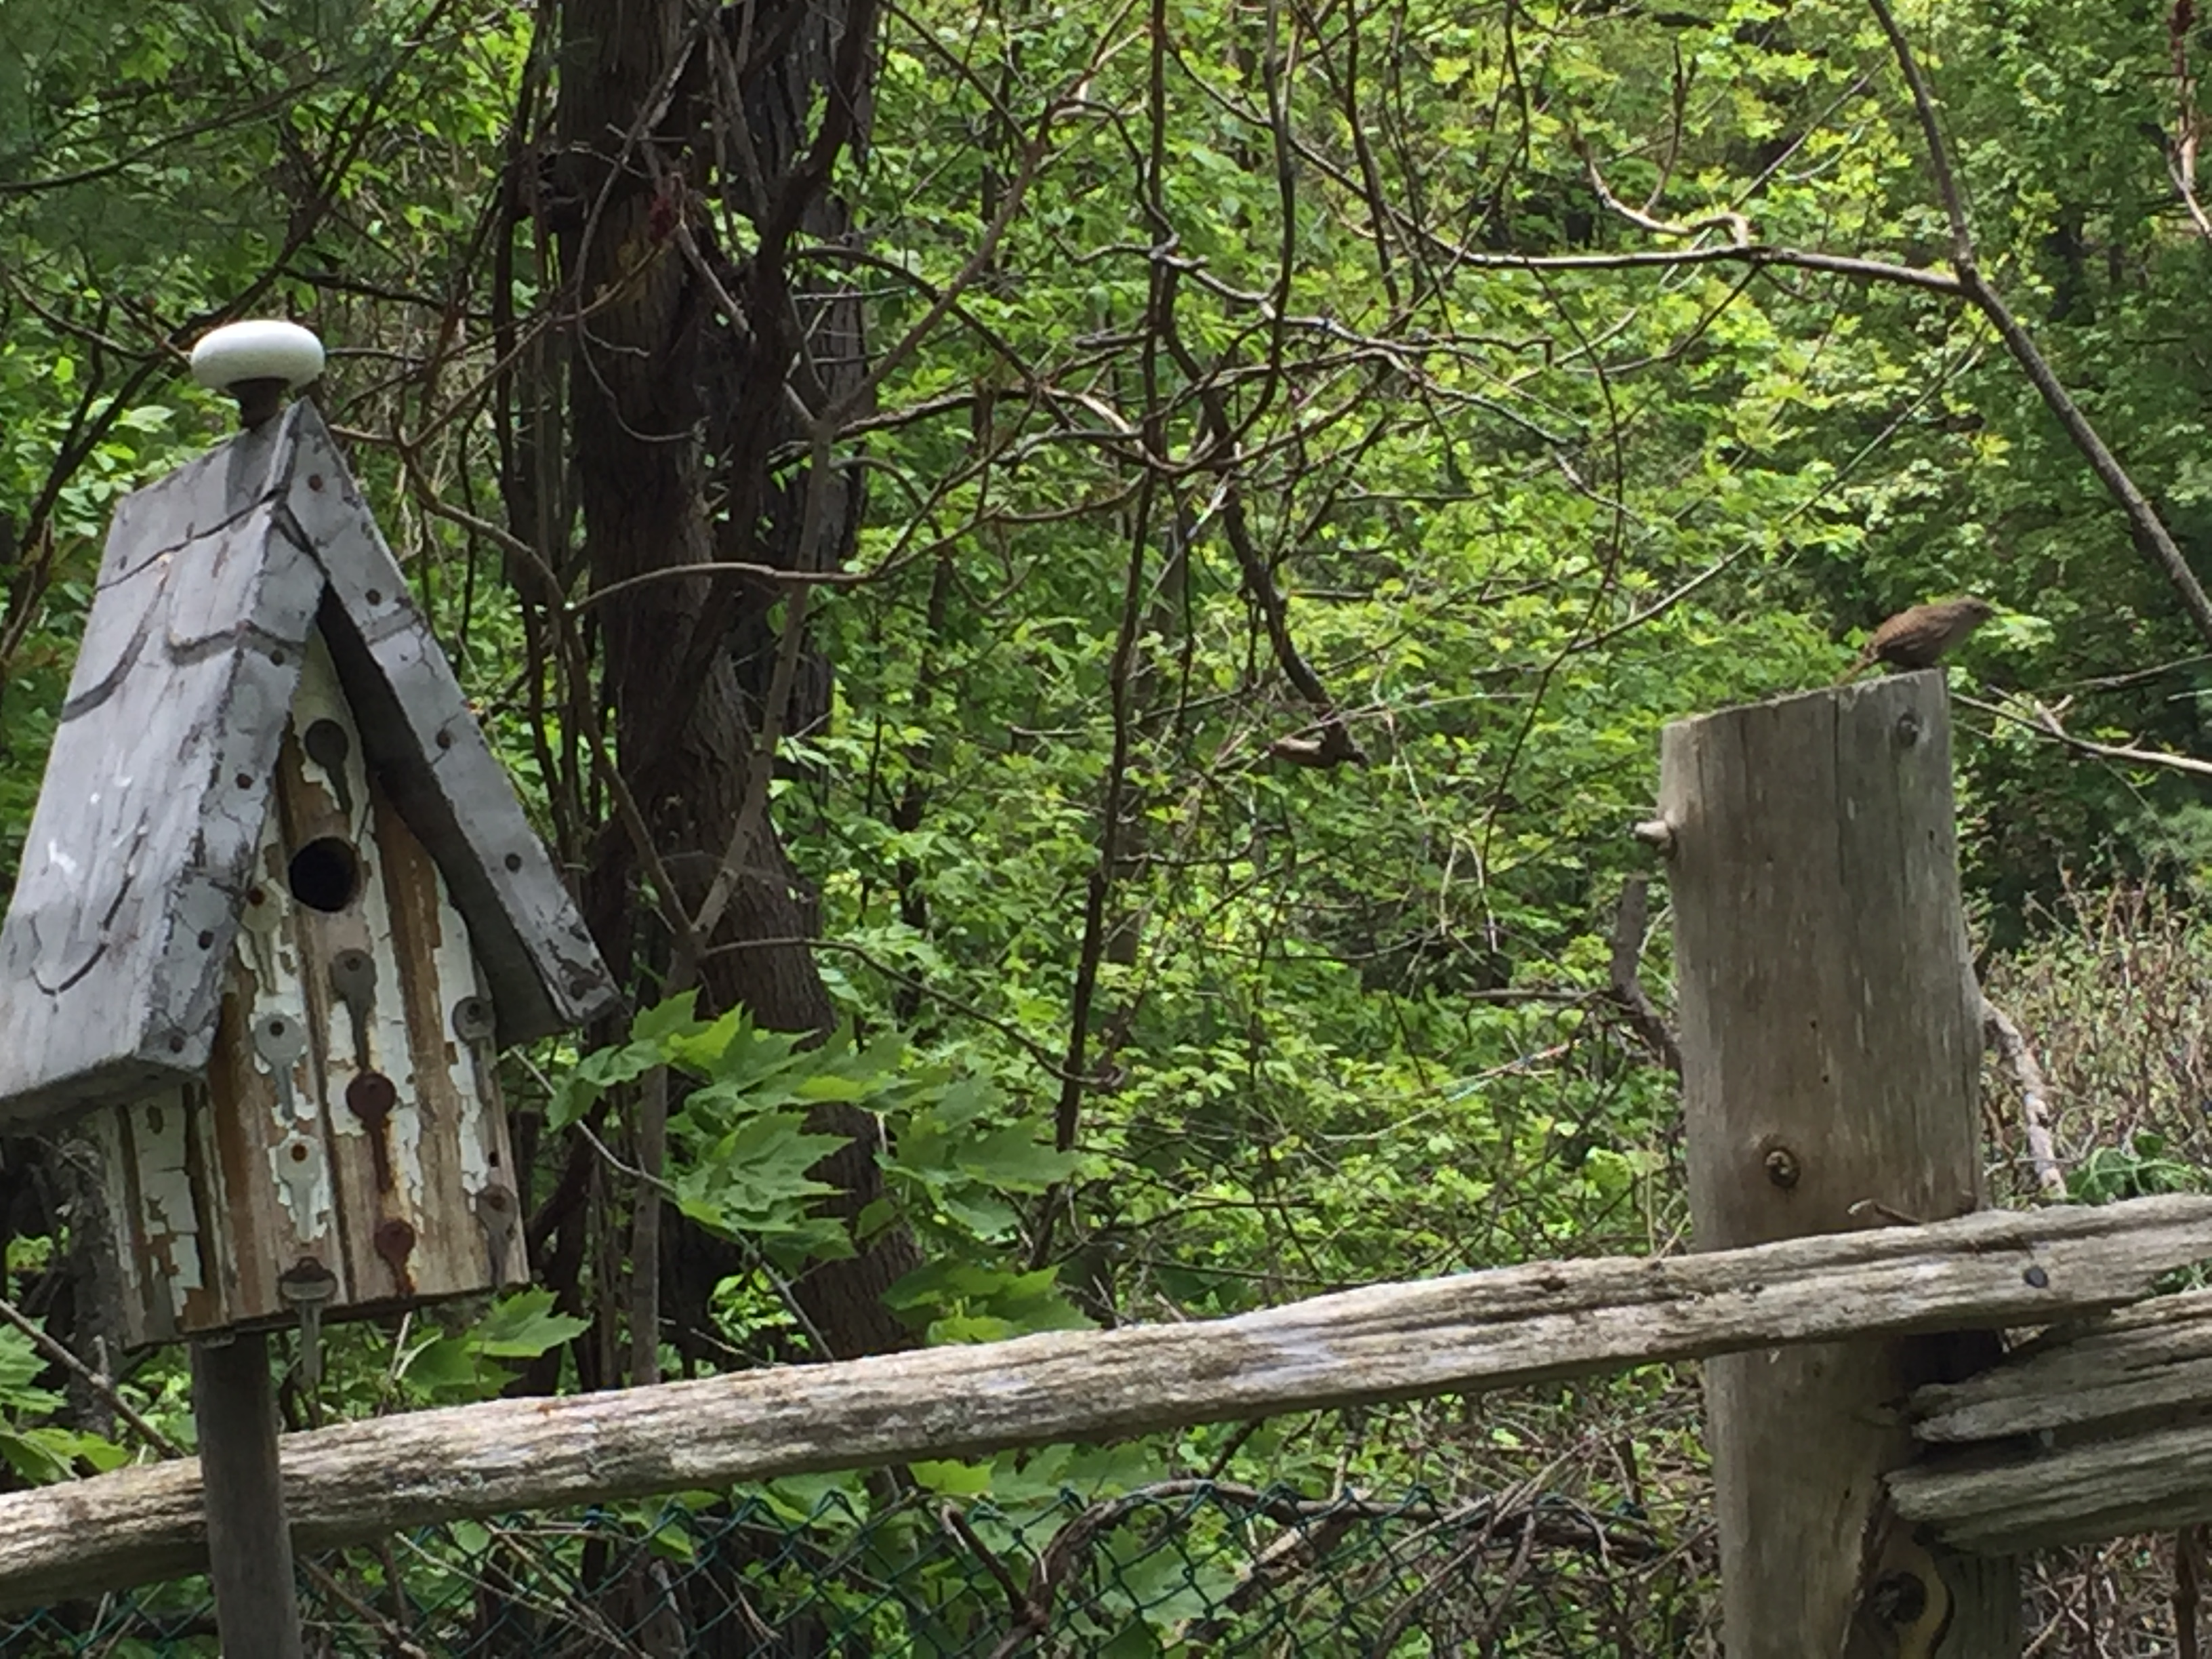 Birdhouse and wren